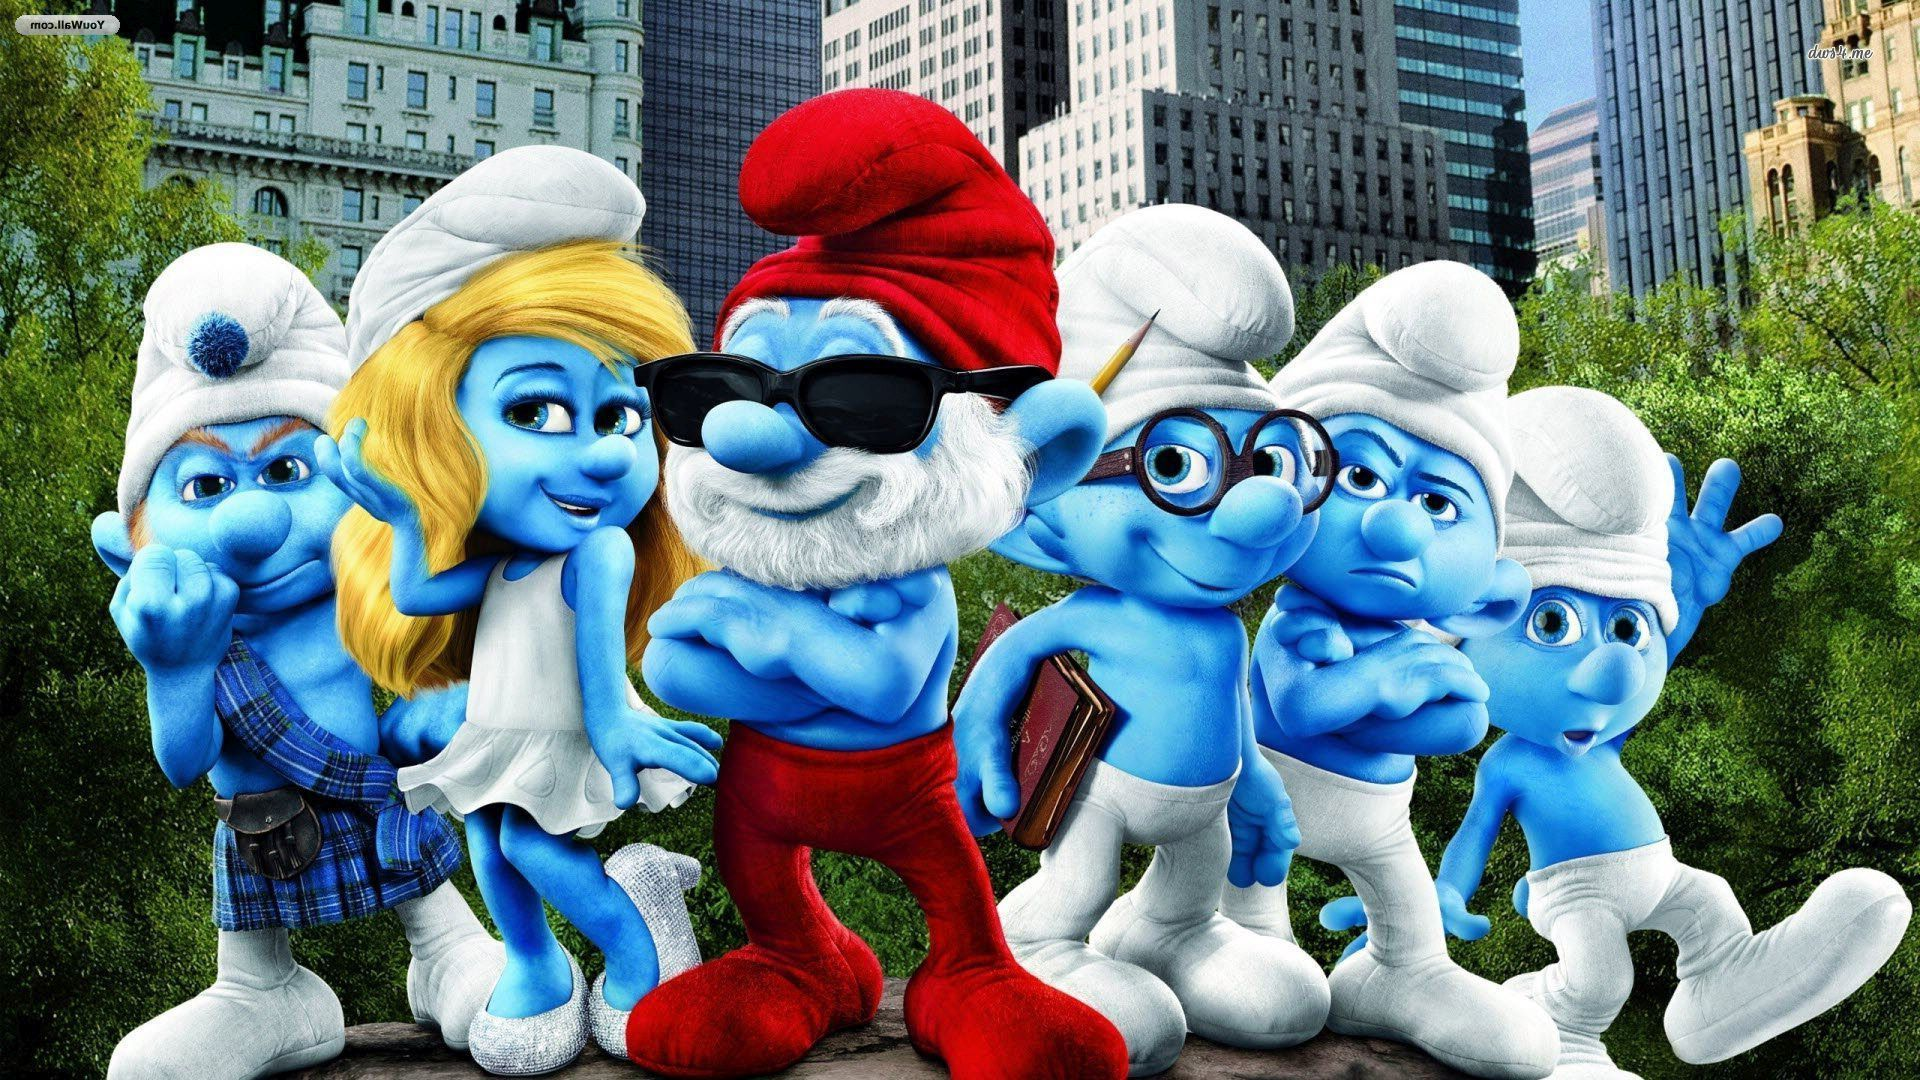 Smurfs Wallpapers, Pictures, Images